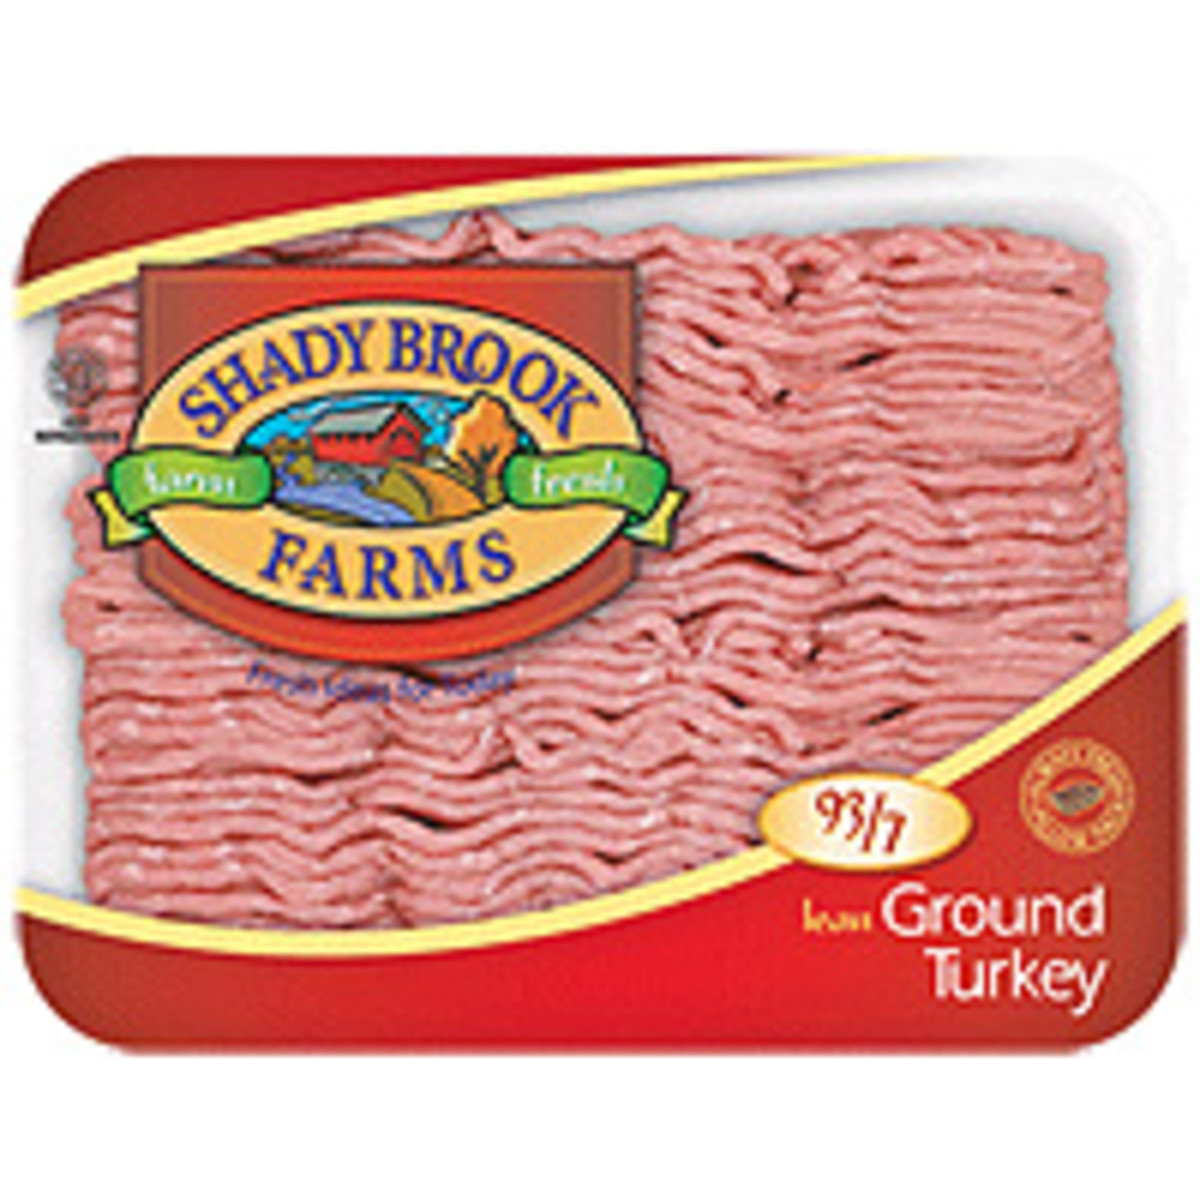 Ground turkey is tasty and much healthier than ground beef. It also is less expensive. In this recipe, you hardly notice the difference!